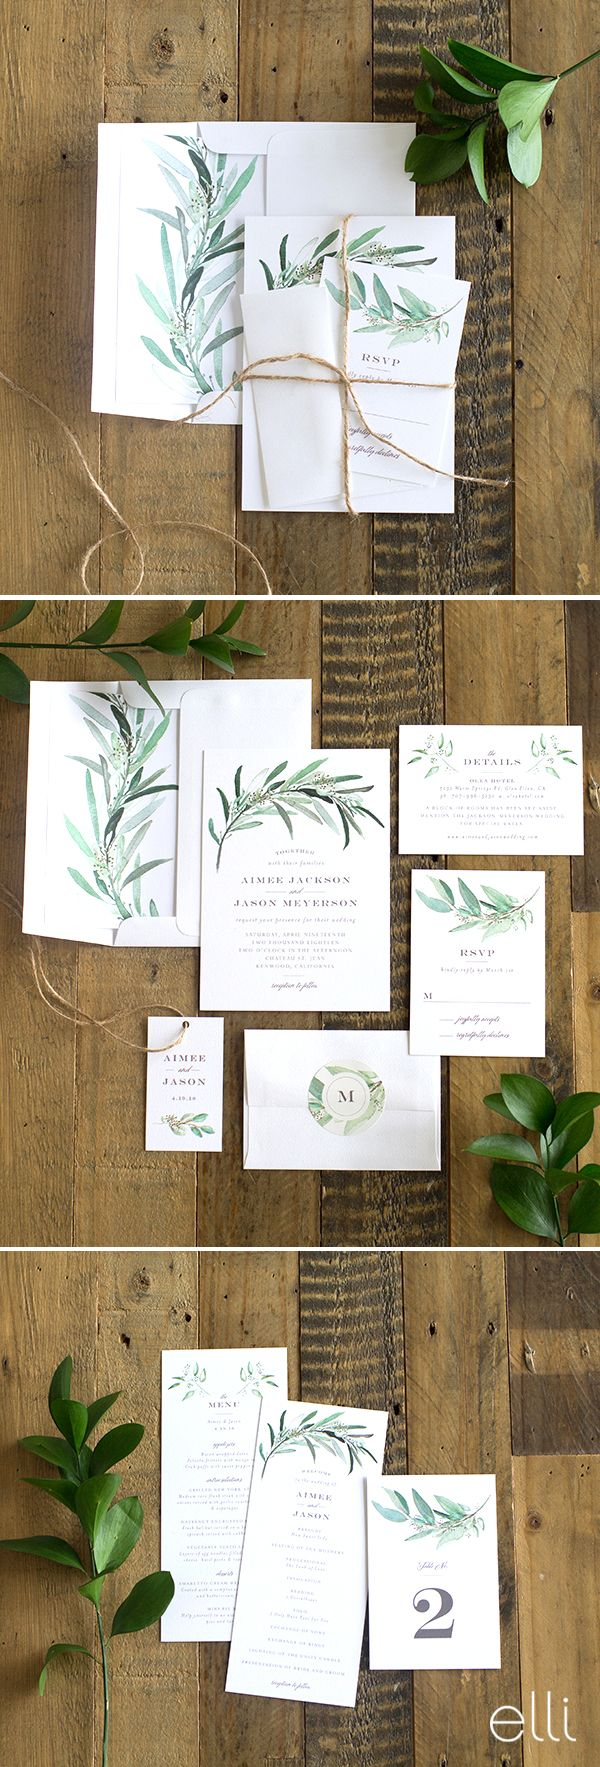 Gorgeous lush greenery wedding invitation suite